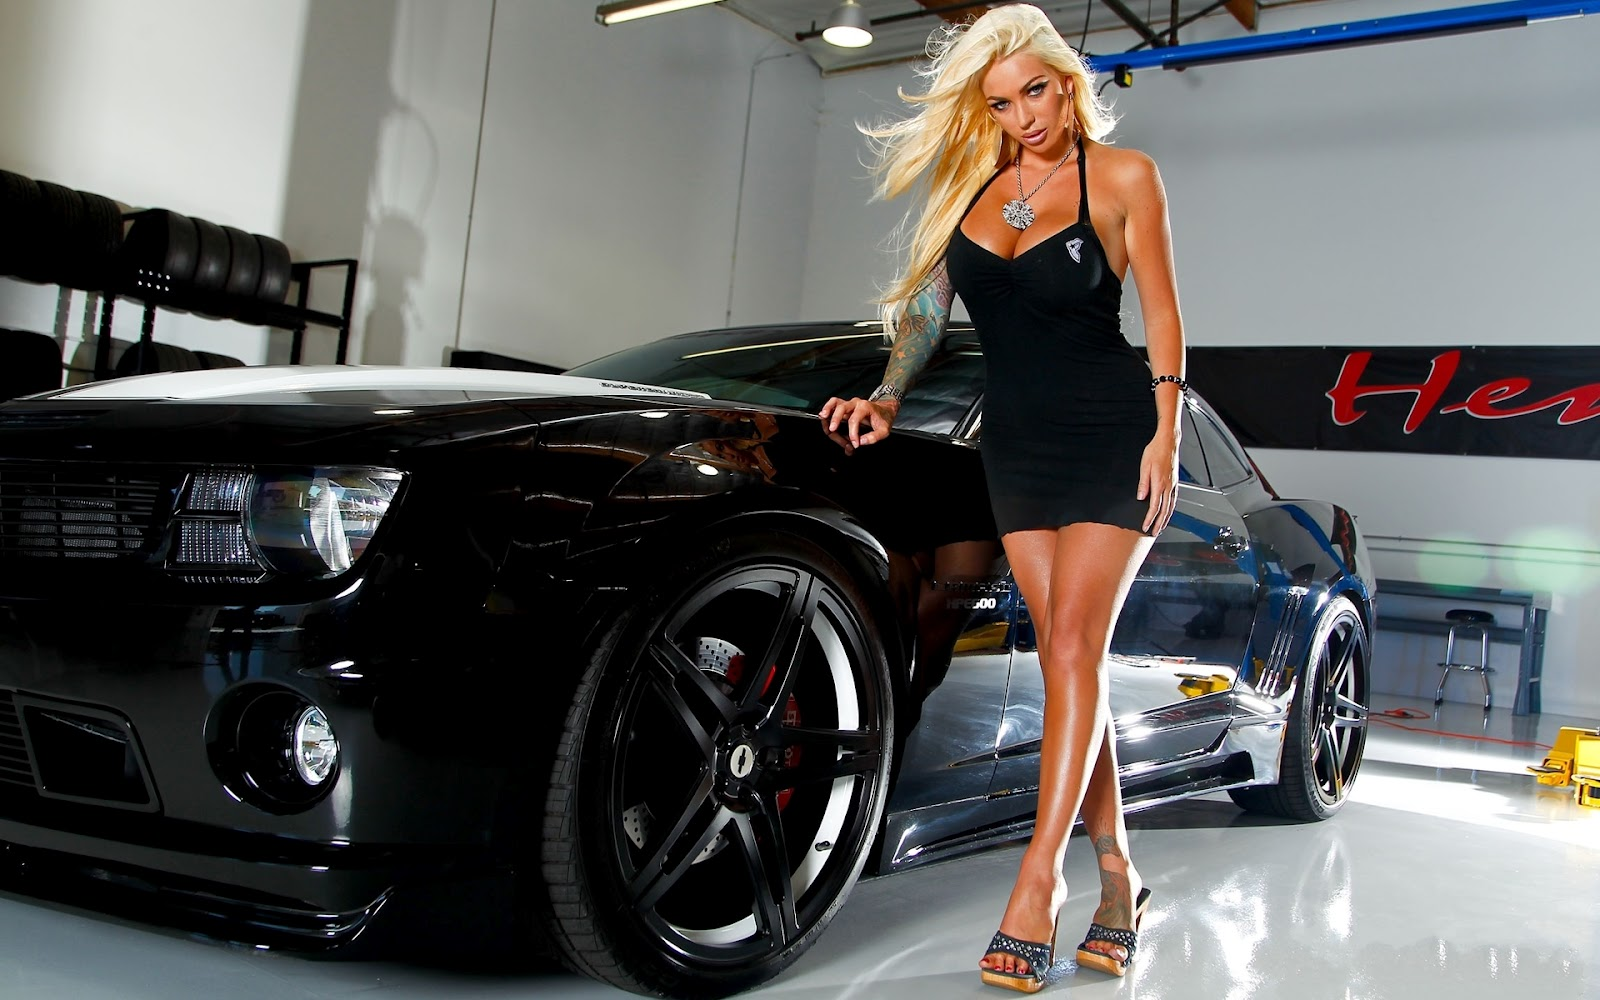 Mujeres Y Carros Megan Pictures   car automotive